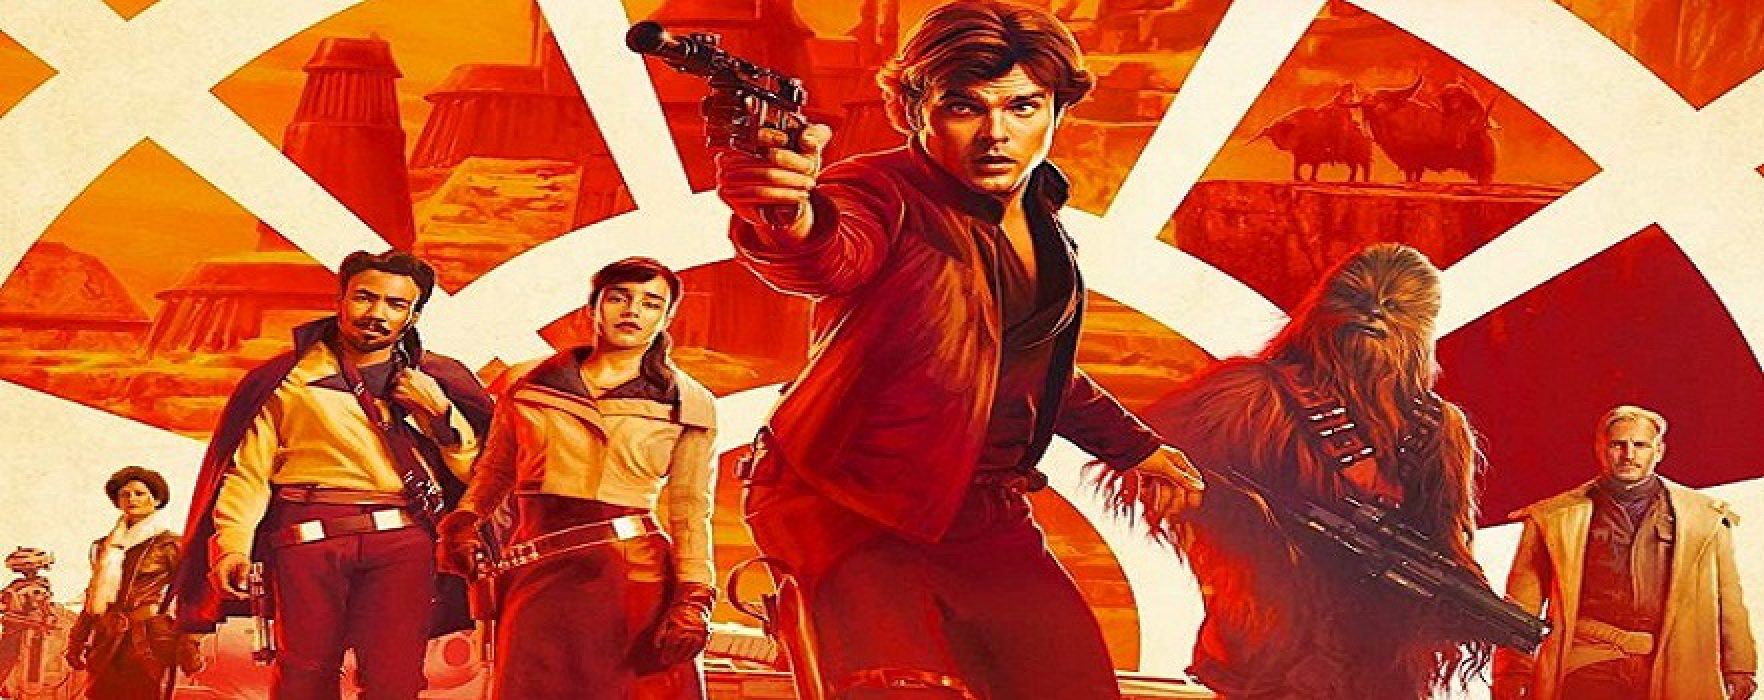 Solo: A Star Wars Story: No New Tale to Tell